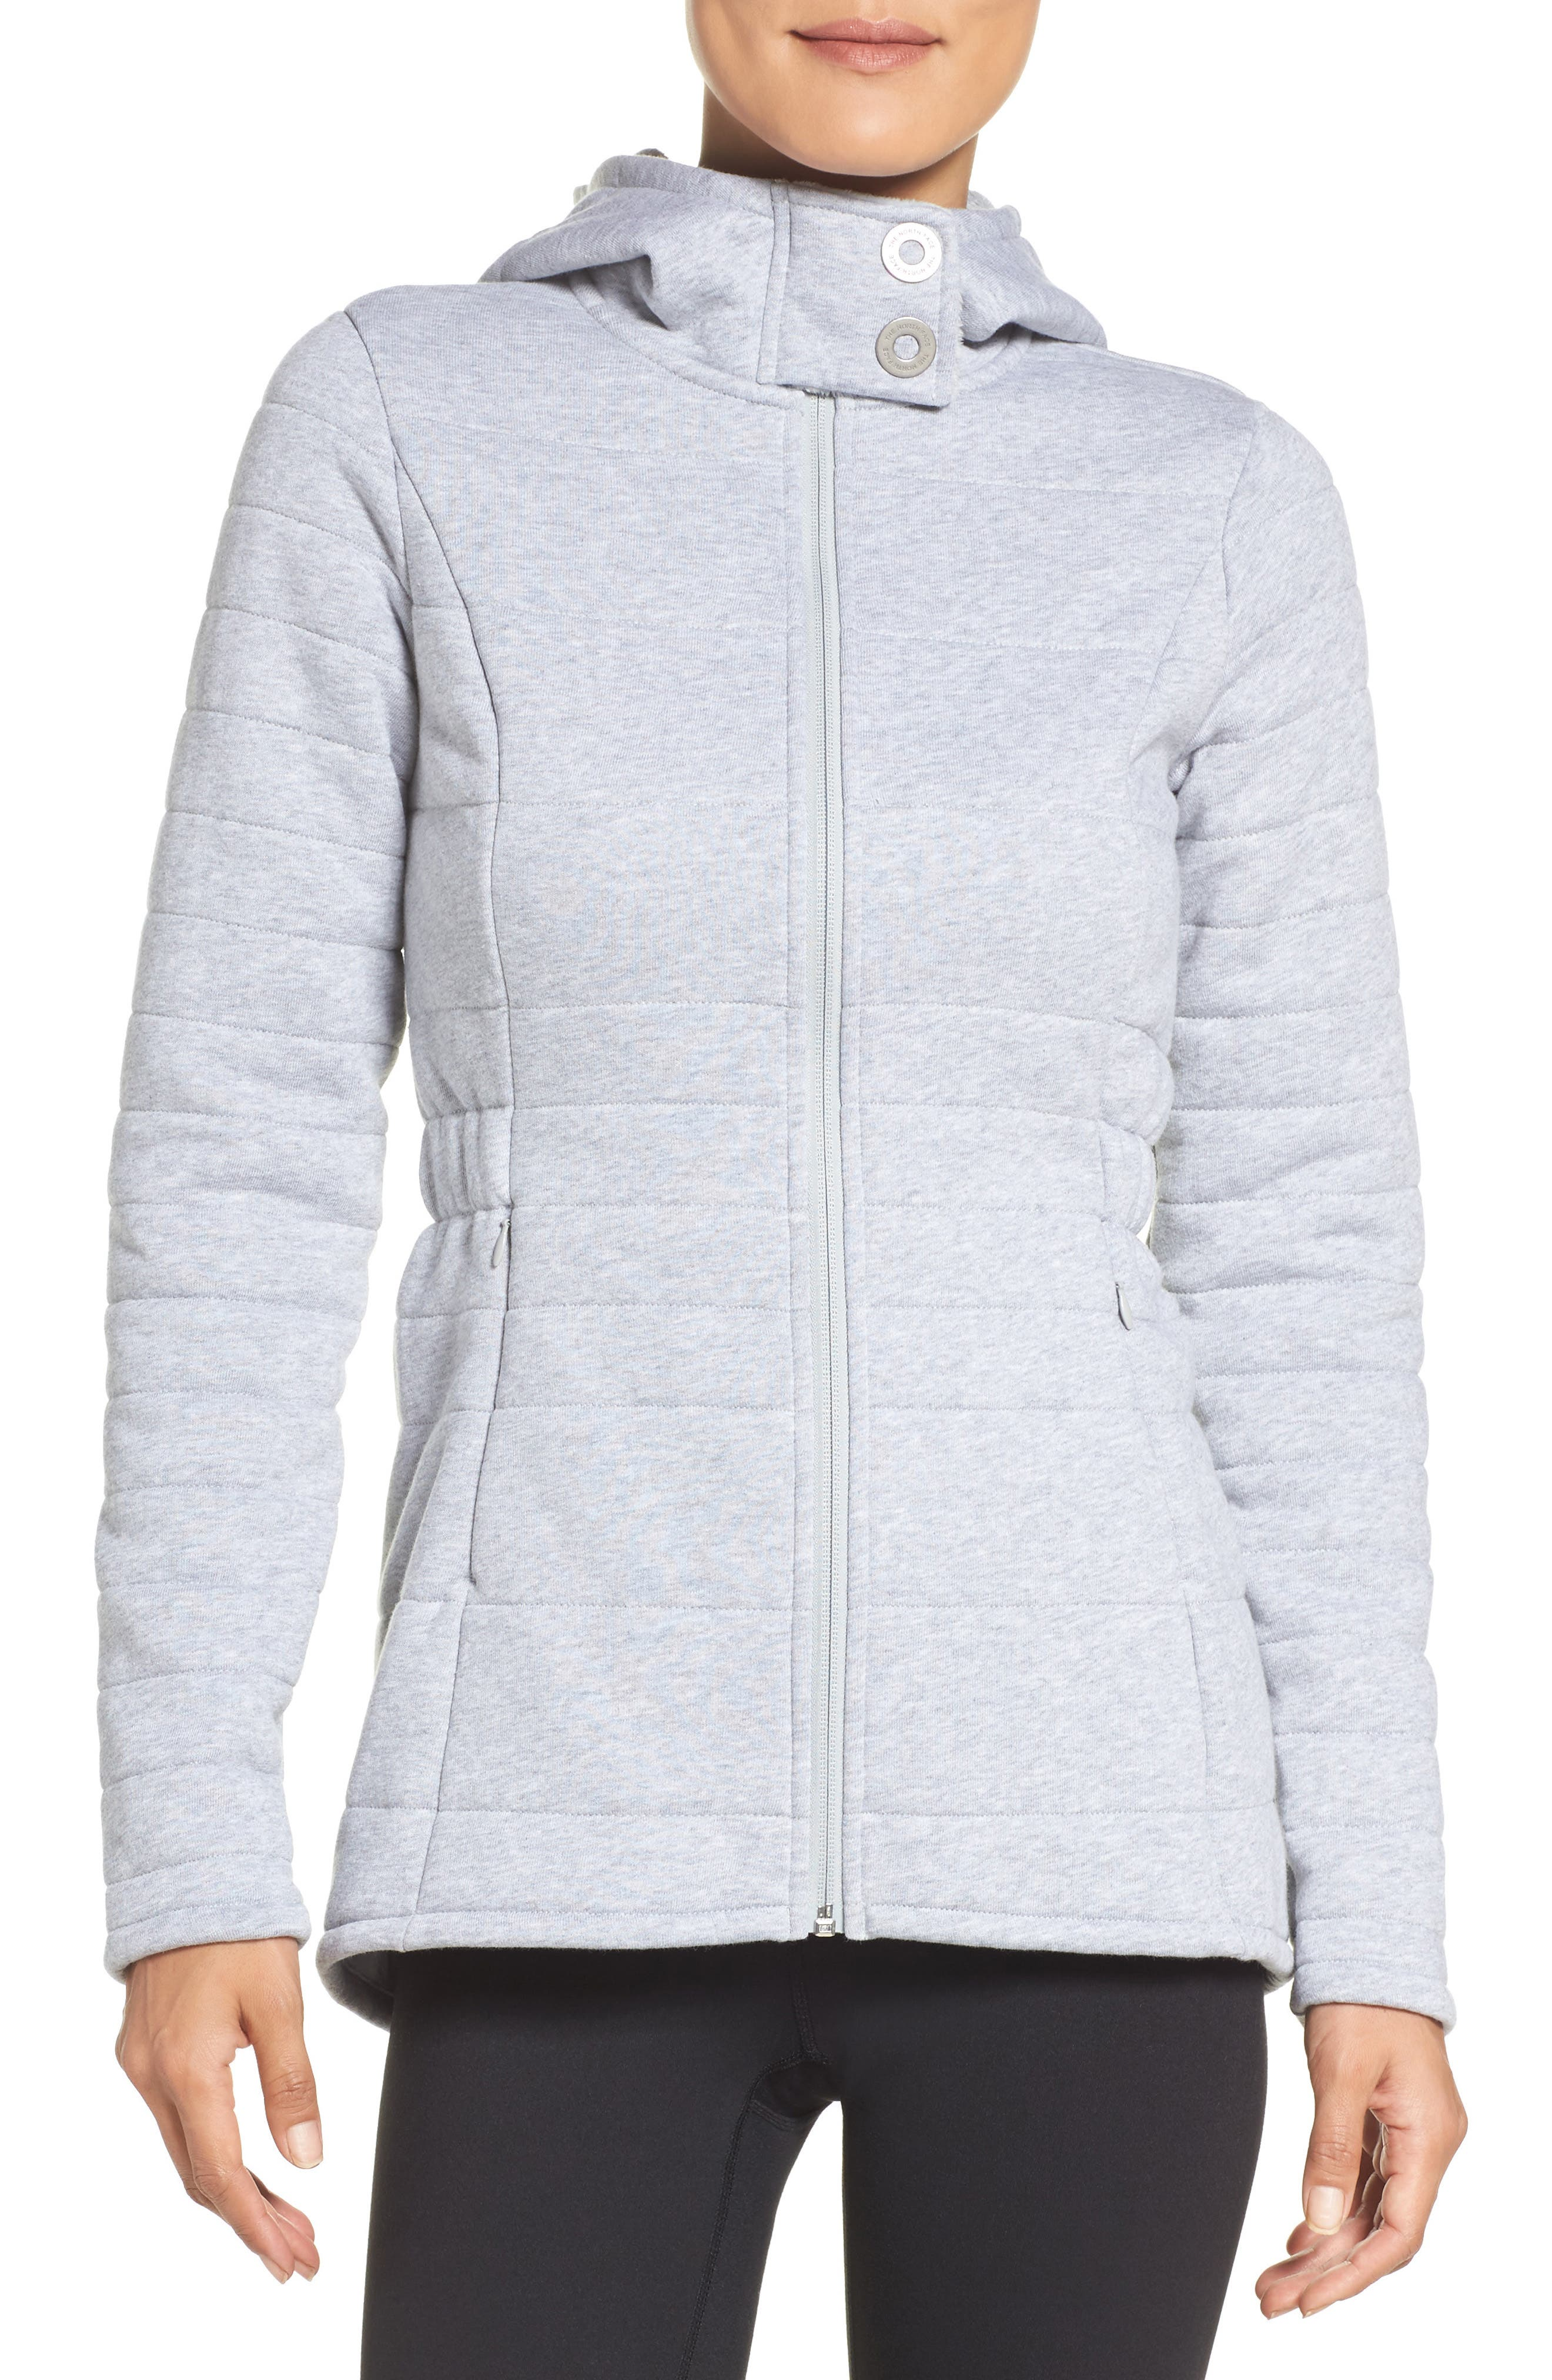 The North Face Caroluna 2 Jacket